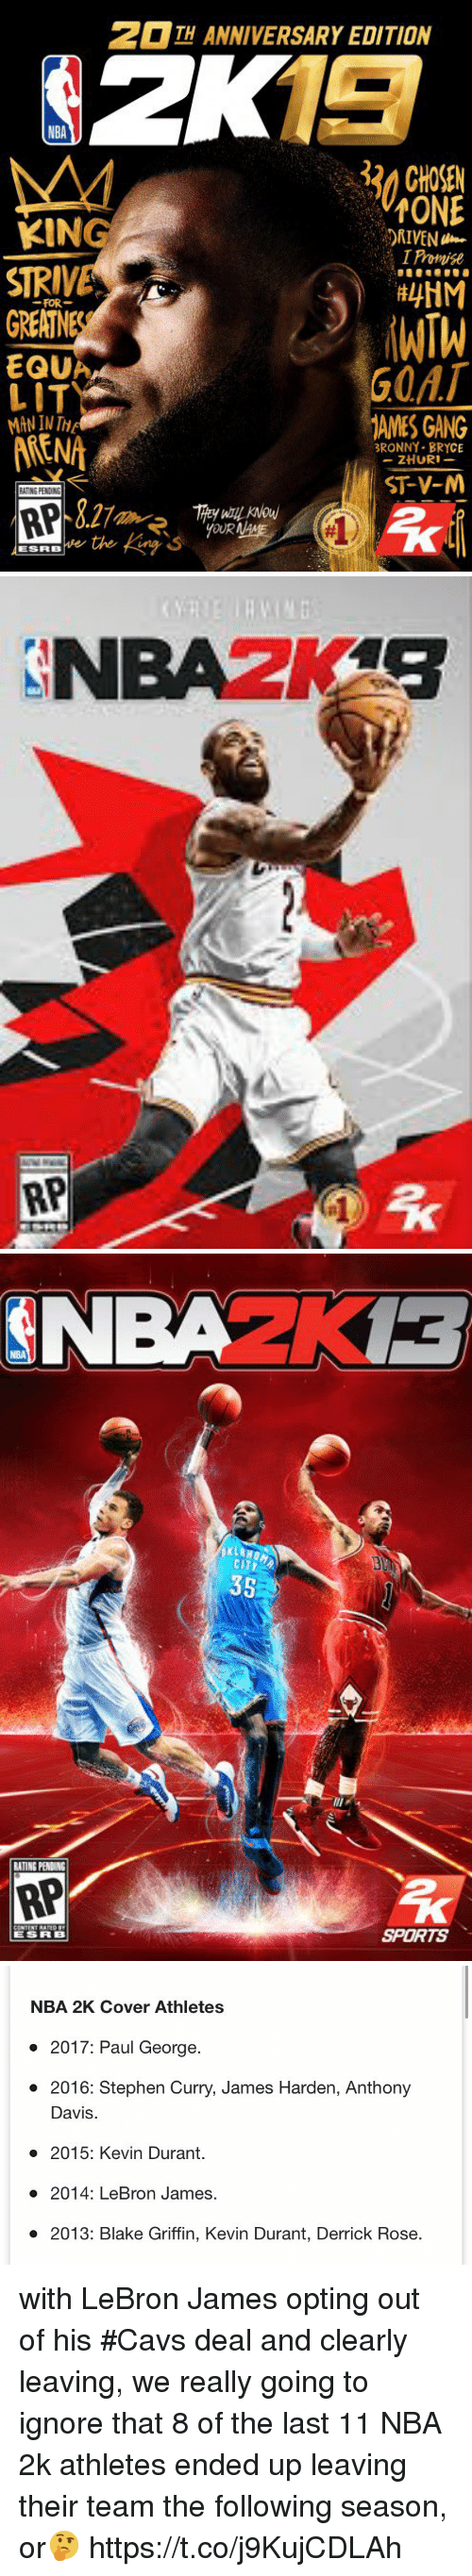 Blake Griffin, Cavs, and Derrick Rose: TH ANNIVERSARY EDITION  NBA  3 CHOSEN  TONE  RIVEN  I Promise  KING  STRIVE  GREATNES  EQUA  LIT  FOR-  G0AT  AMES GANG  MAN IN T  ARENA  BRONNY- BRYCE  -ZHURI_  ST-V-M  RATING PENDING   NBA  RATING PENDING  RP  SPORTS   NBA 2K Cover Athletes  . 2017: Paul George.  . 2016: Stephen Curry, James Harden, Anthony  Davis  2015: Kevin Durant.  o 2014: LeBron James.  2013: Blake Griffin, Kevin Durant, Derrick Rose. with LeBron James opting out of his #Cavs deal and clearly leaving, we really going to ignore that 8 of the last 11 NBA 2k athletes ended up leaving their team the following season, or🤔 https://t.co/j9KujCDLAh